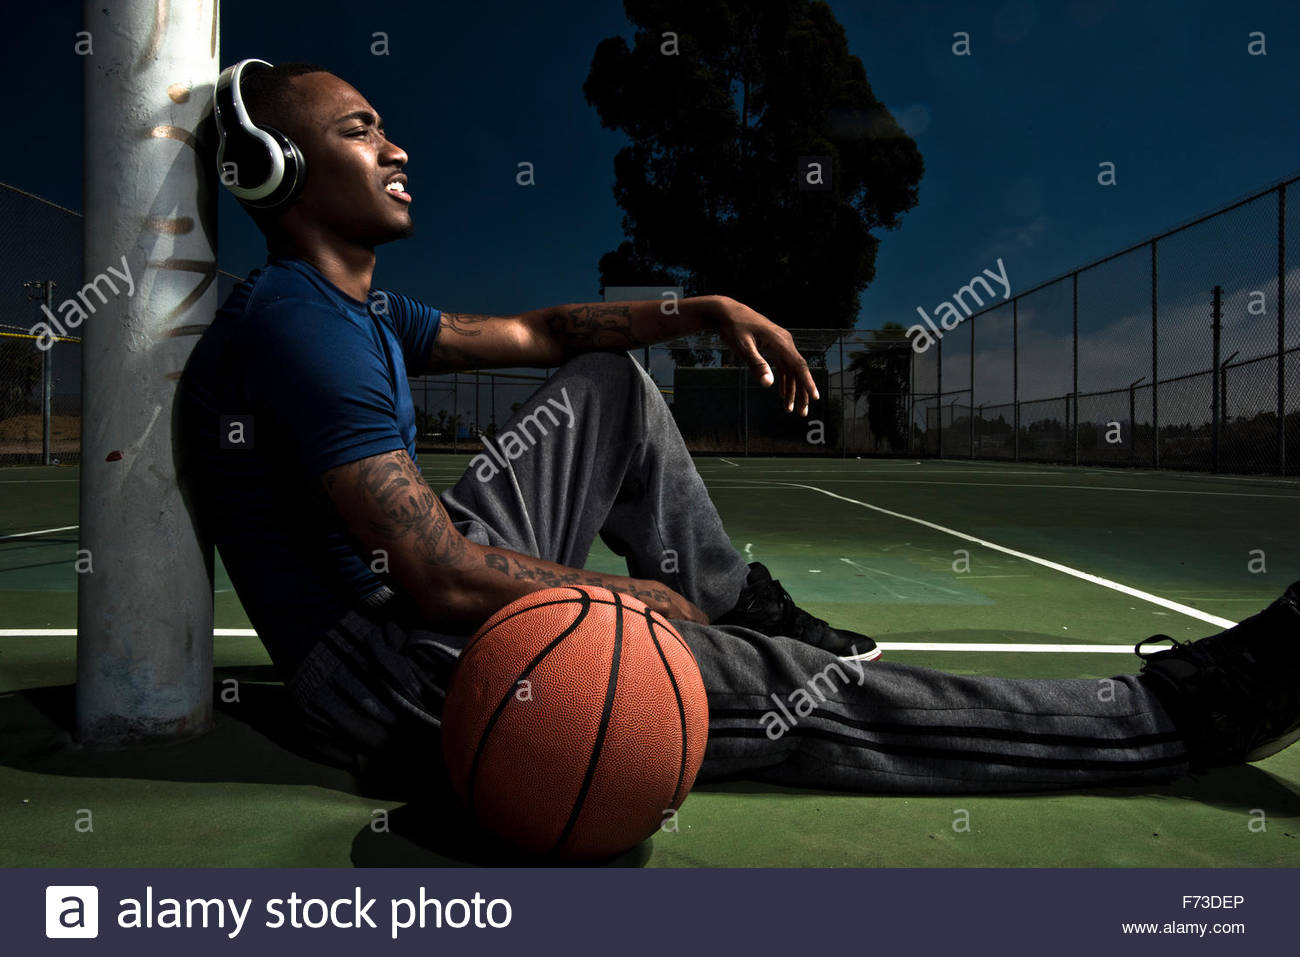 A basketball player listens to music before a game. - Stock Image